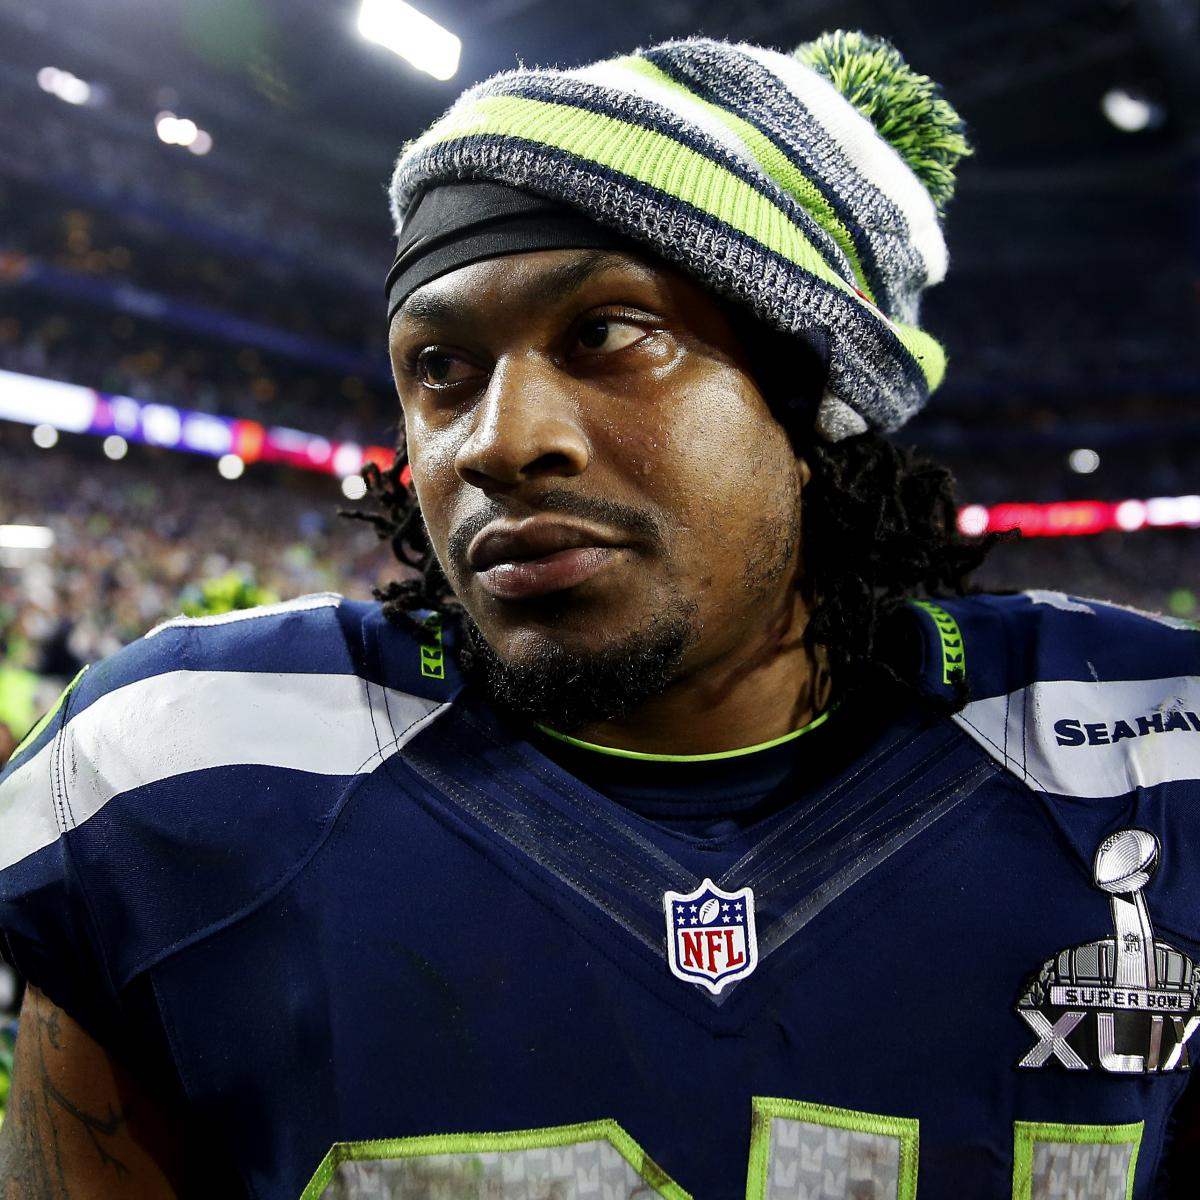 Seahawks Must Extend Marshawn Lynch, But Can't Make Him A